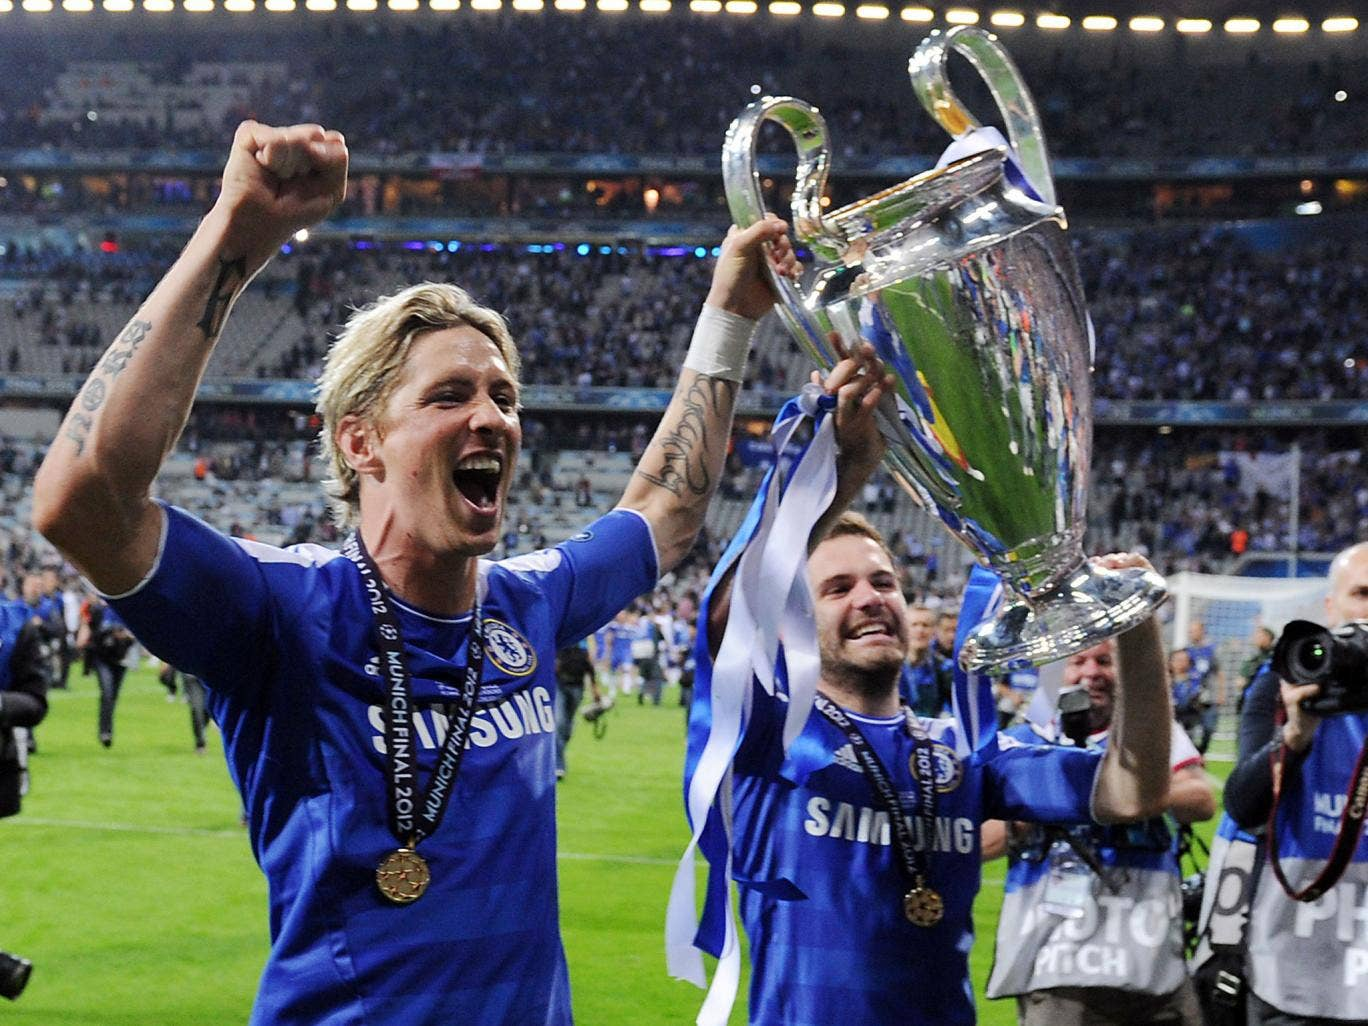 Smaller clubs will not immediately be able to spend £50m on Torres and £23.5m on Mata as Chelsea did